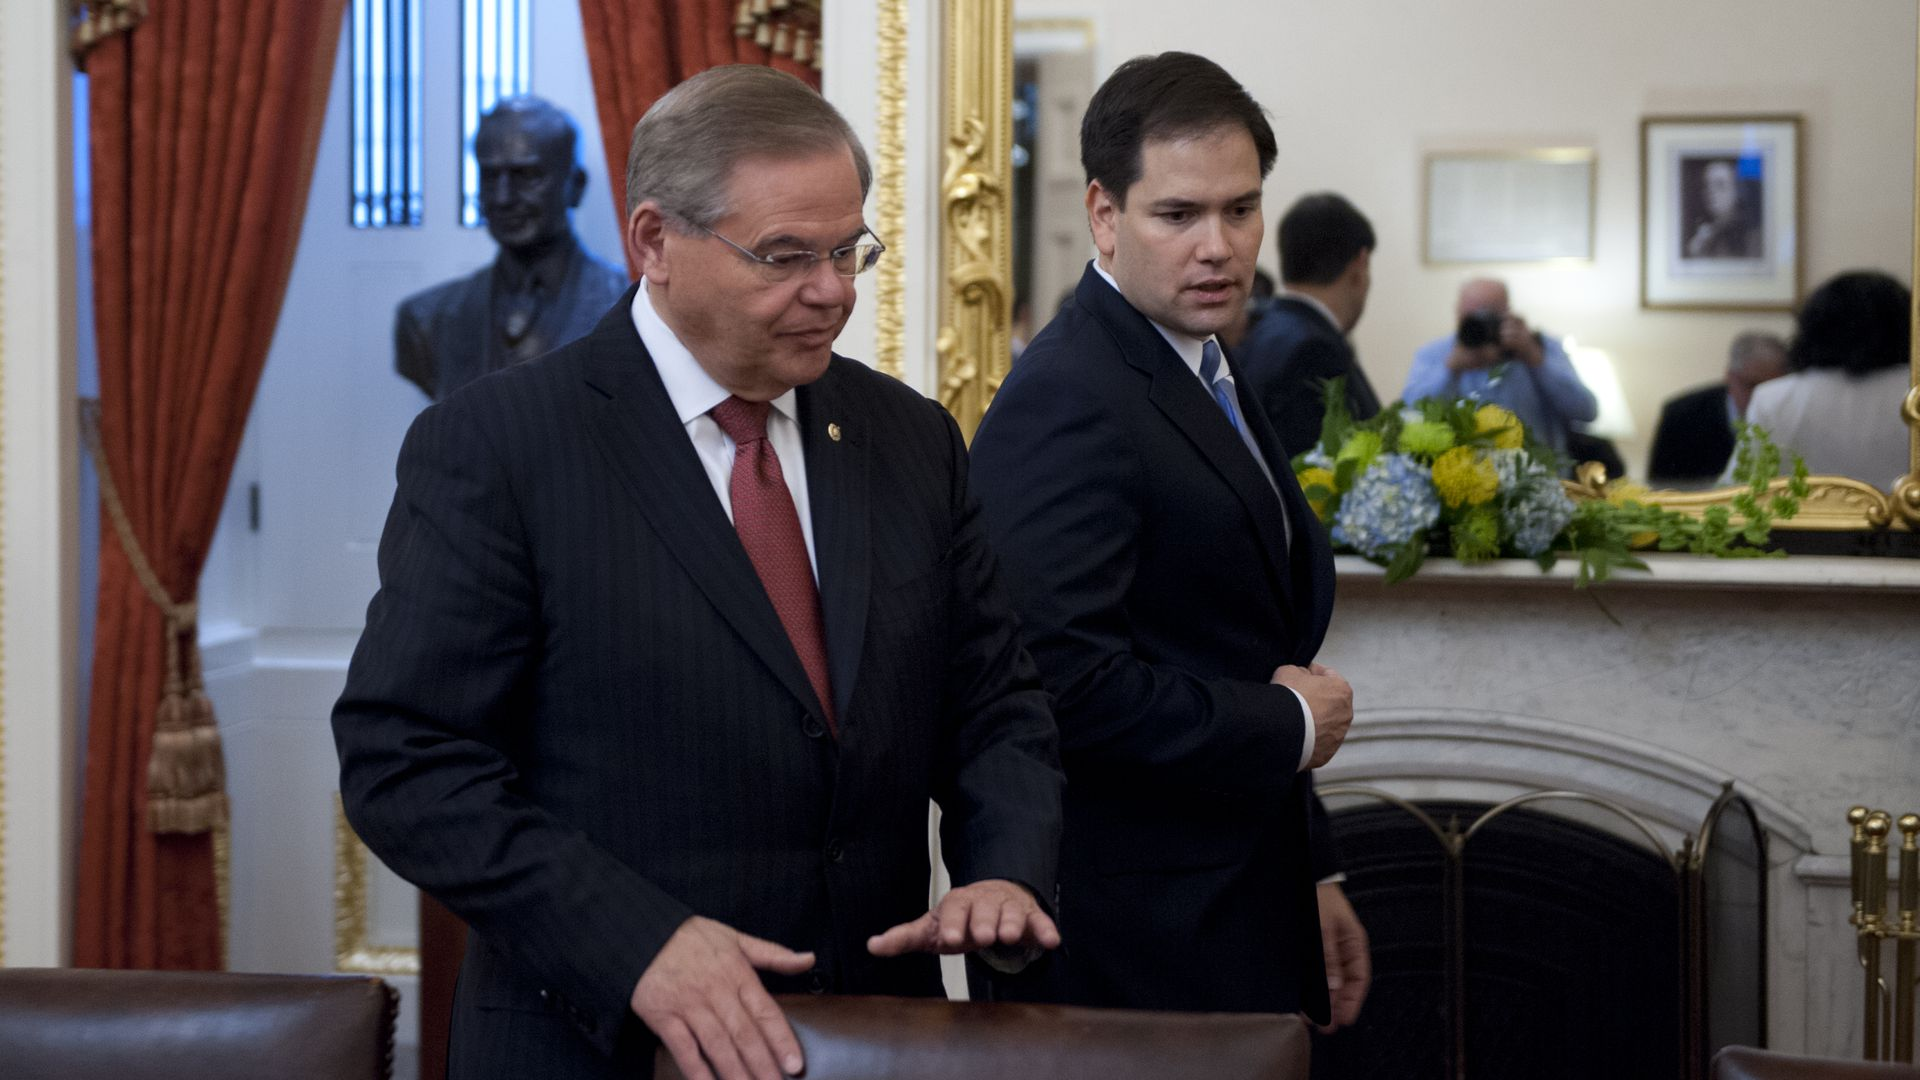 Menendez and Rubio